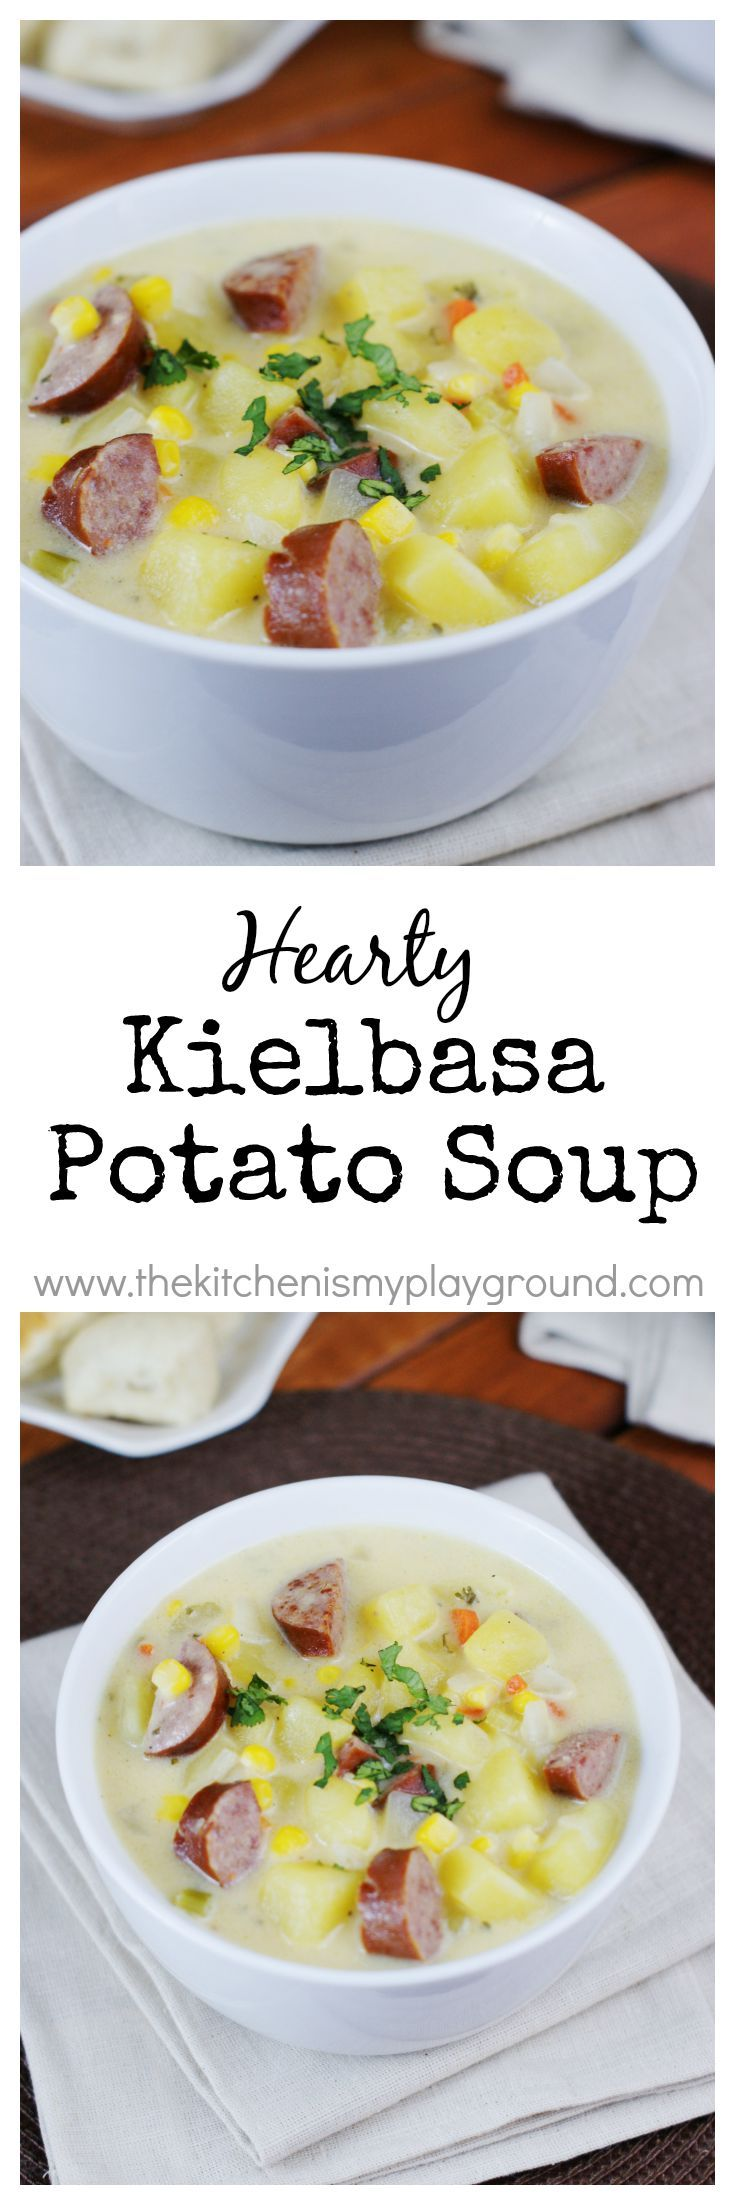 Hearty Kielbasa Potato Soup ~ loaded with flavor, creamy, comforting, & satisfying! www.thekitchenismyplayground.com